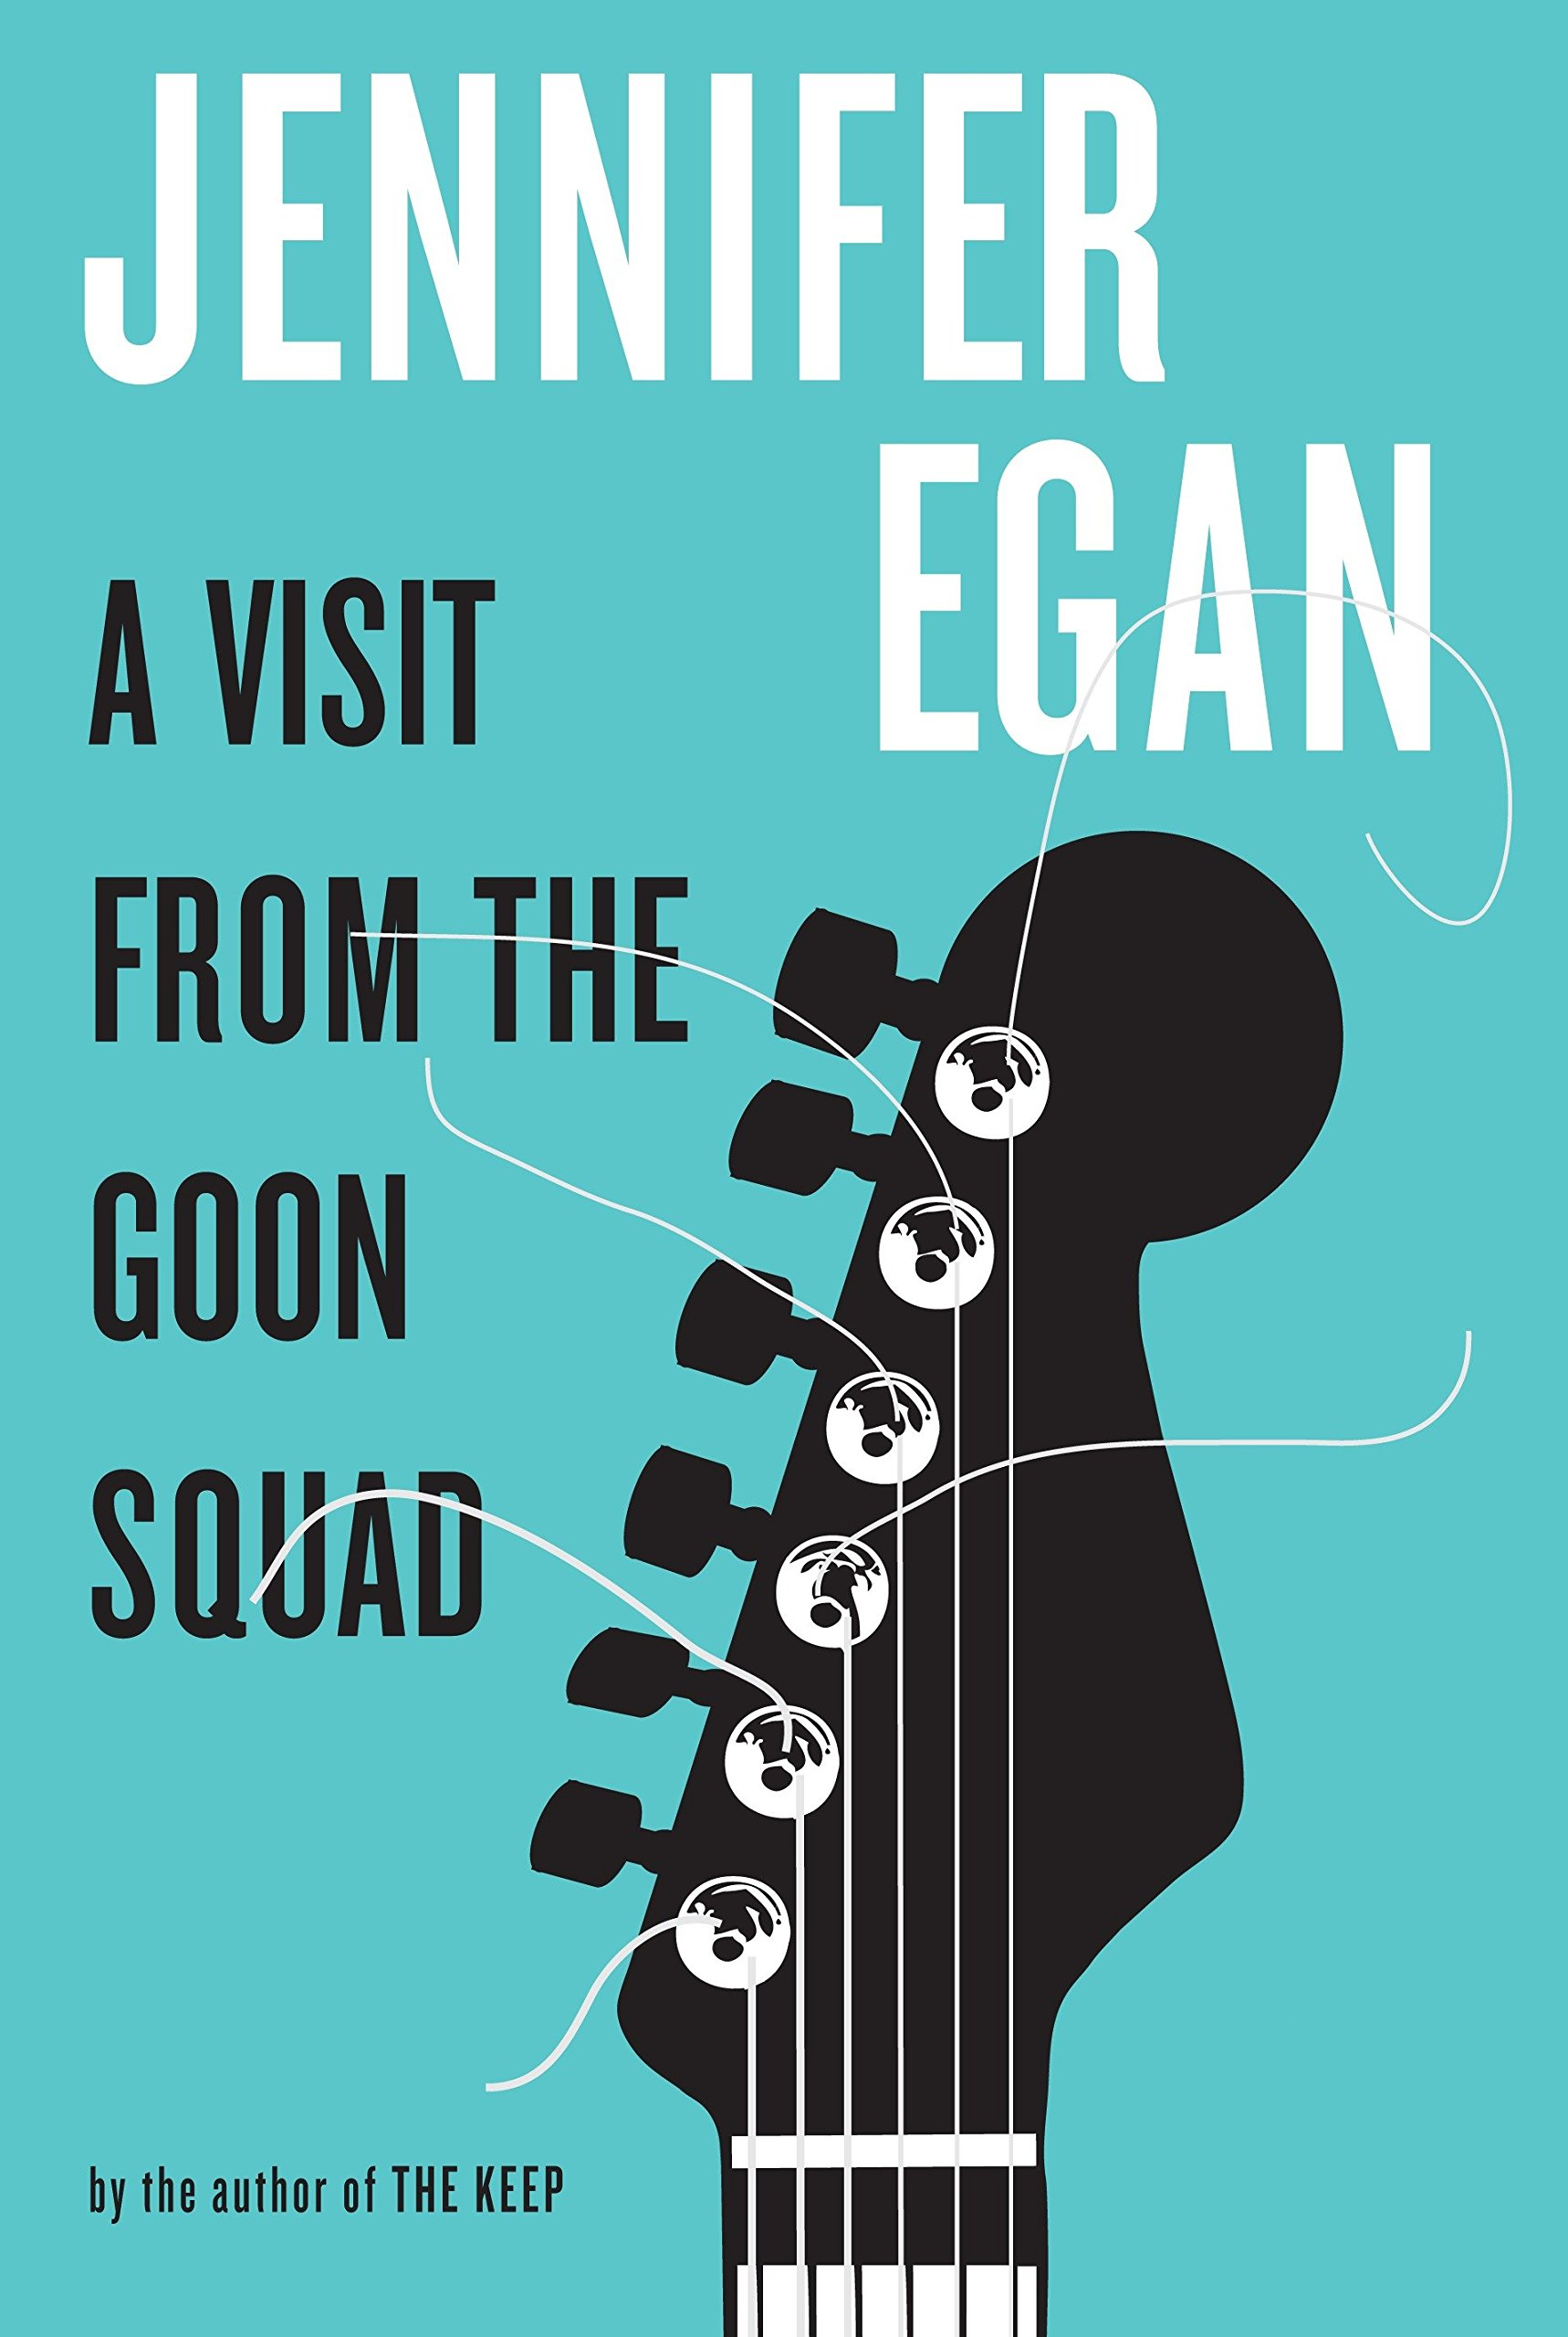 A Visit from the Goon Squad: Amazon.ca: Egan, Jennifer: Books